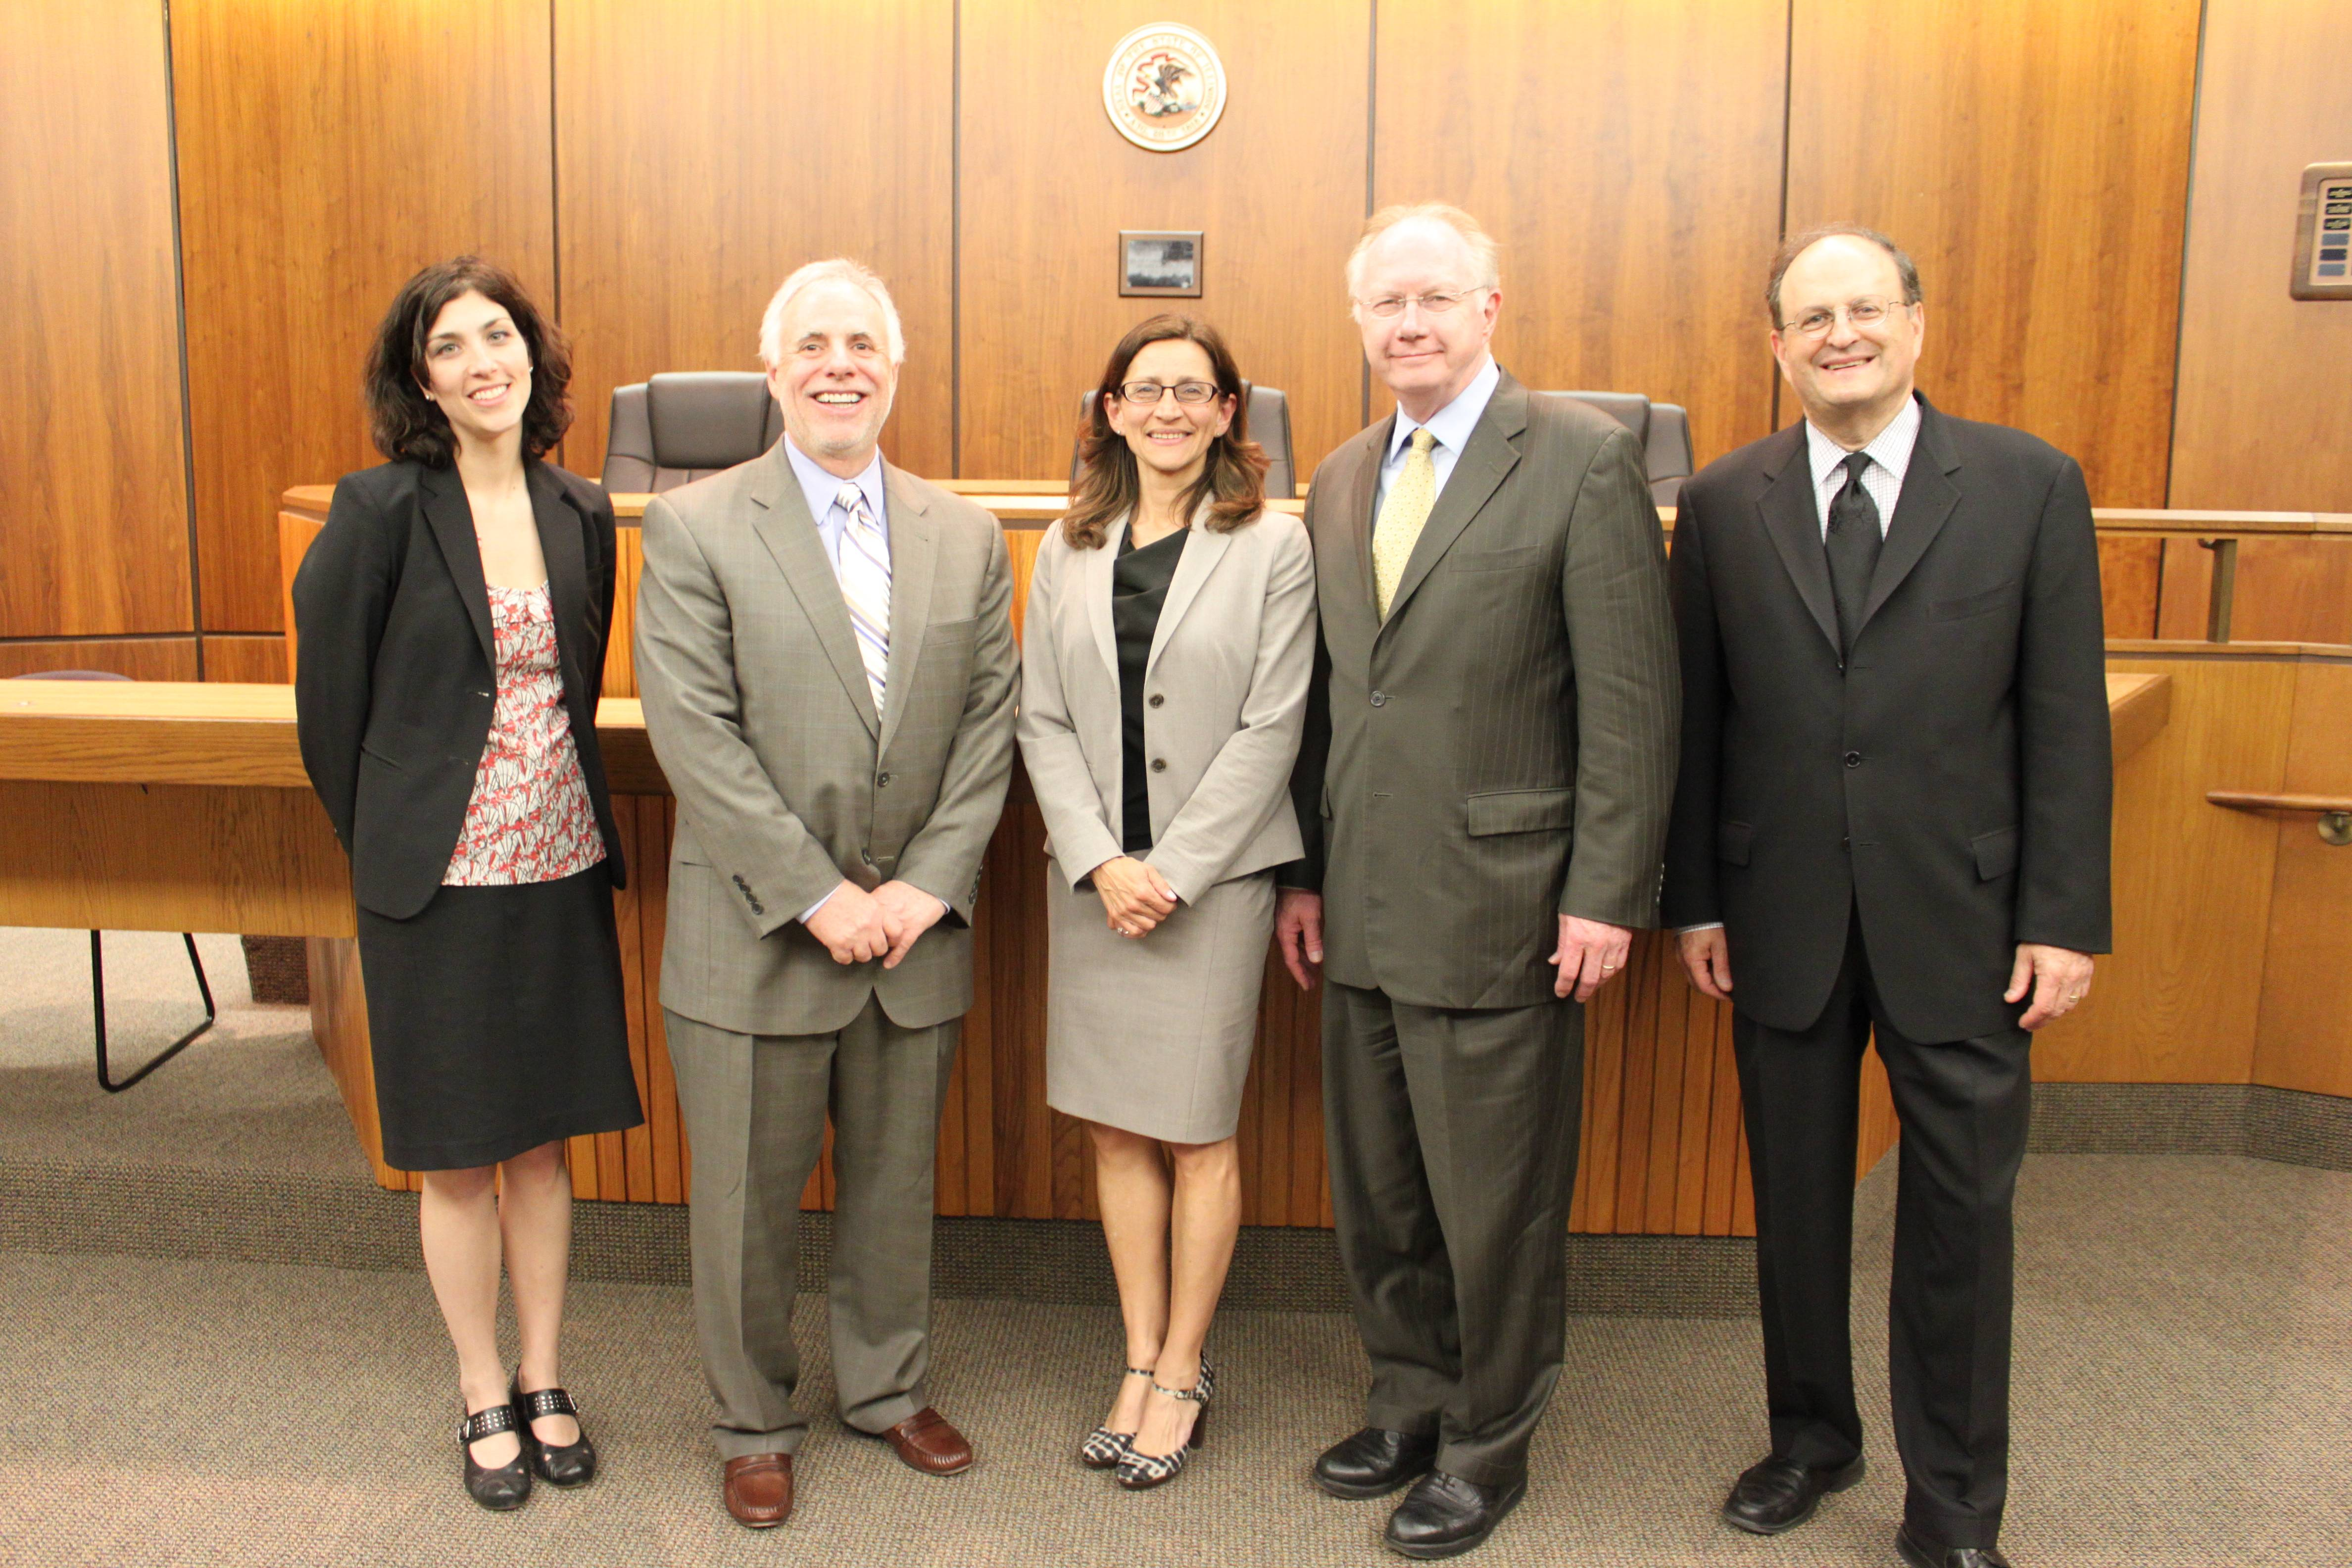 (from left to right):  Danielle Hirsch, executive director of the Illinois Supreme Court Commission on Access to Justice; Justice Robert R. Thomas, Illinois Supreme Court; NIU Law Dean Jennifer Rosato; Chief Justice Thomas L. Kilbride, Illinois Supreme Court; and Jeff Colman, chair of the Illinois Supreme Court Commission on Access to Justice led discussions at the Illinois Supreme Court Commission on Access to Justice Listening Conference held at the Northern Illinois University College of Law.